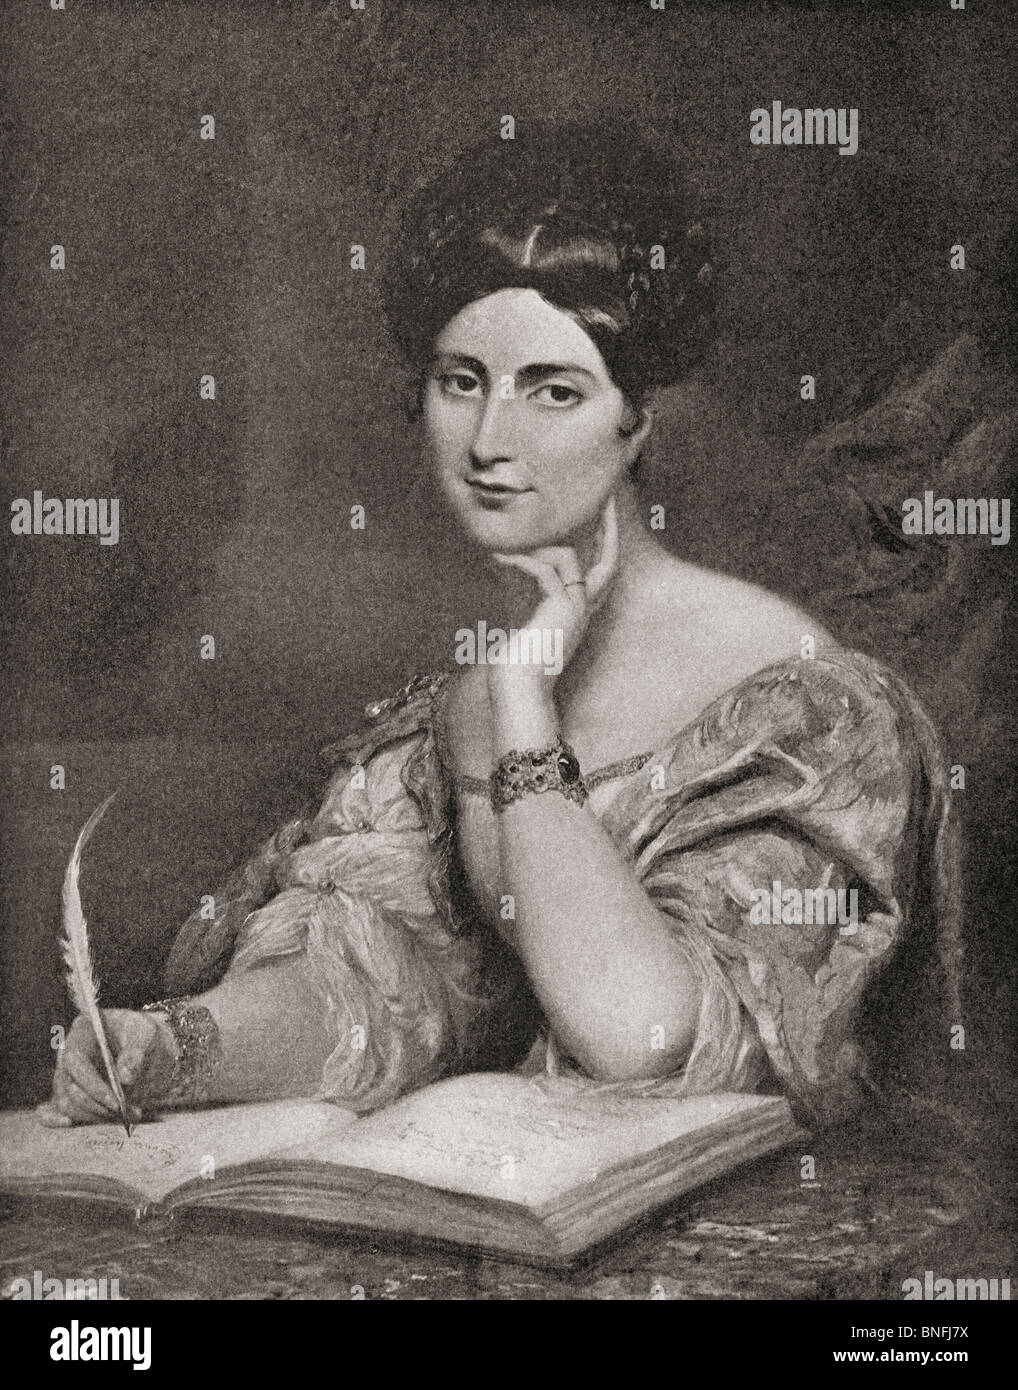 The Honourable Mrs Caroline Norton, 1808 to 1877. English author and reformer. - Stock Image